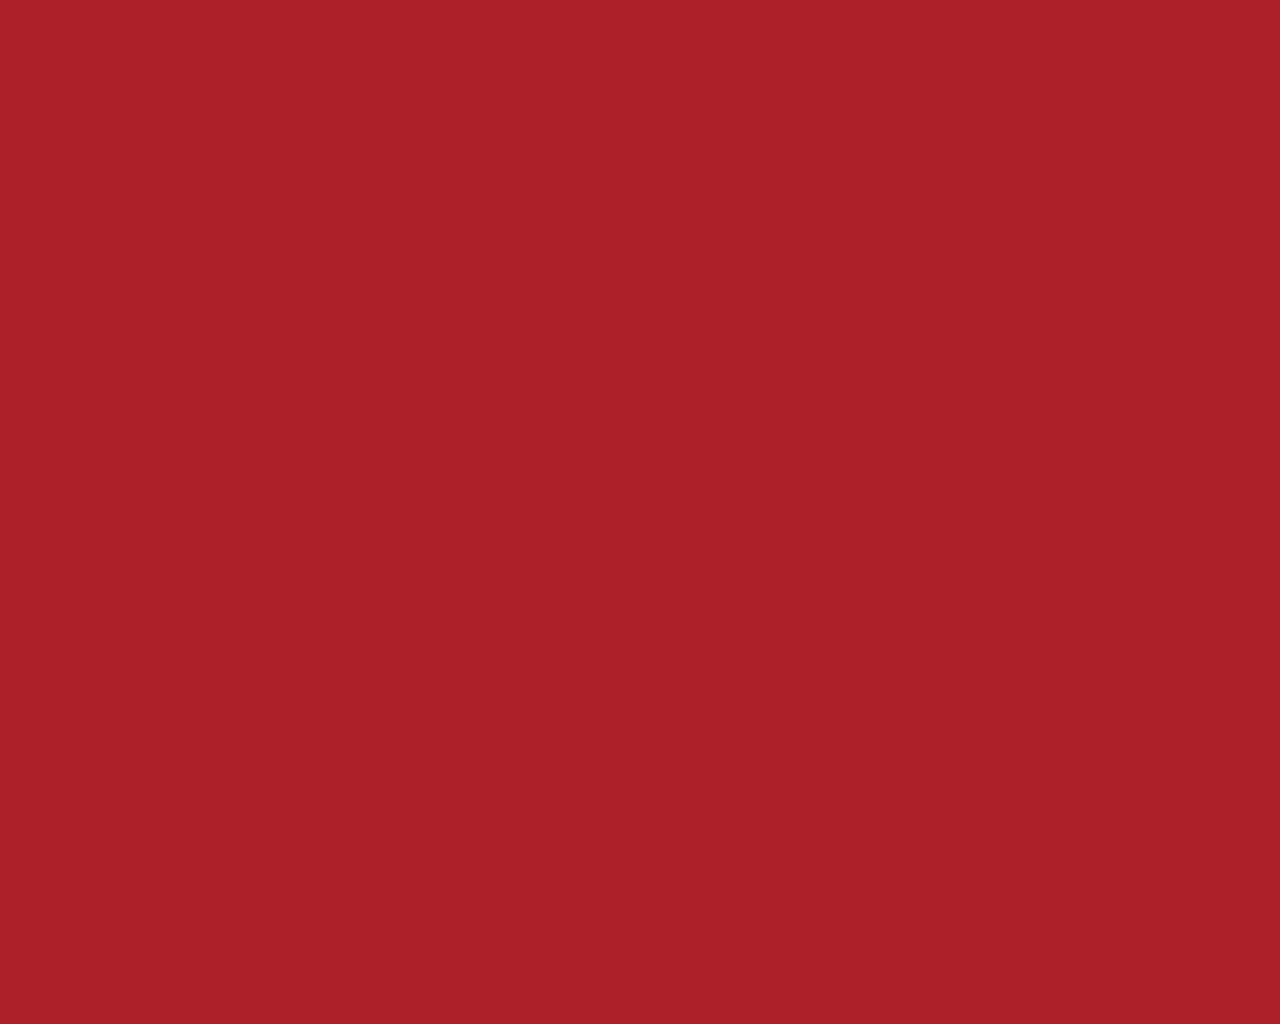 1280x1024 Upsdell Red Solid Color Background